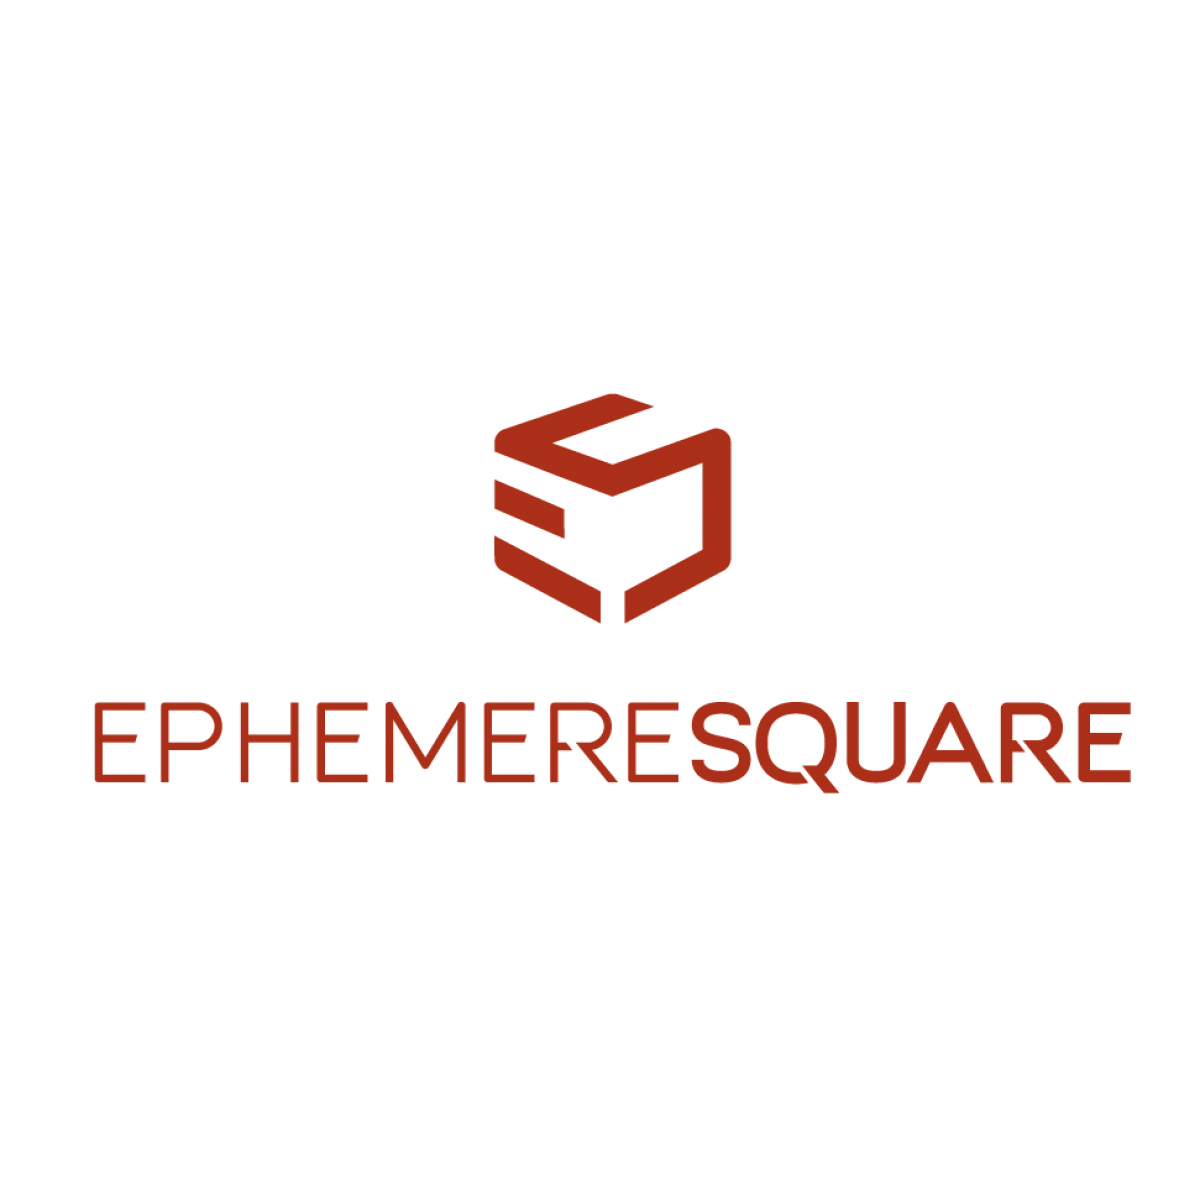 EPHEMERE SQUARE